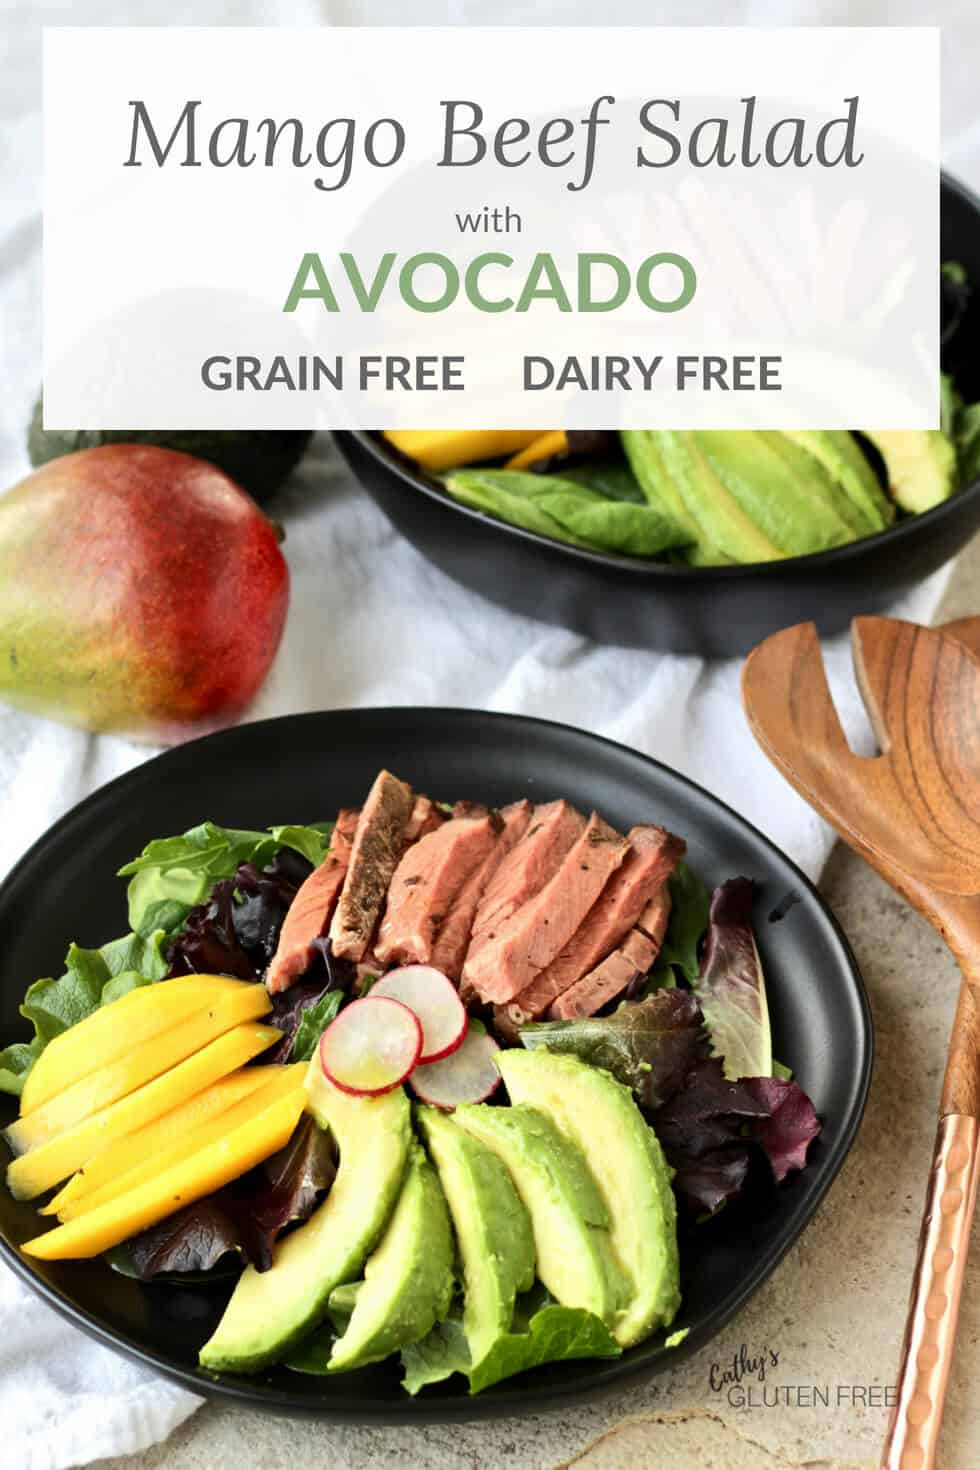 Mango Beef Salad with Avocado | Grain Free, Dairy Free